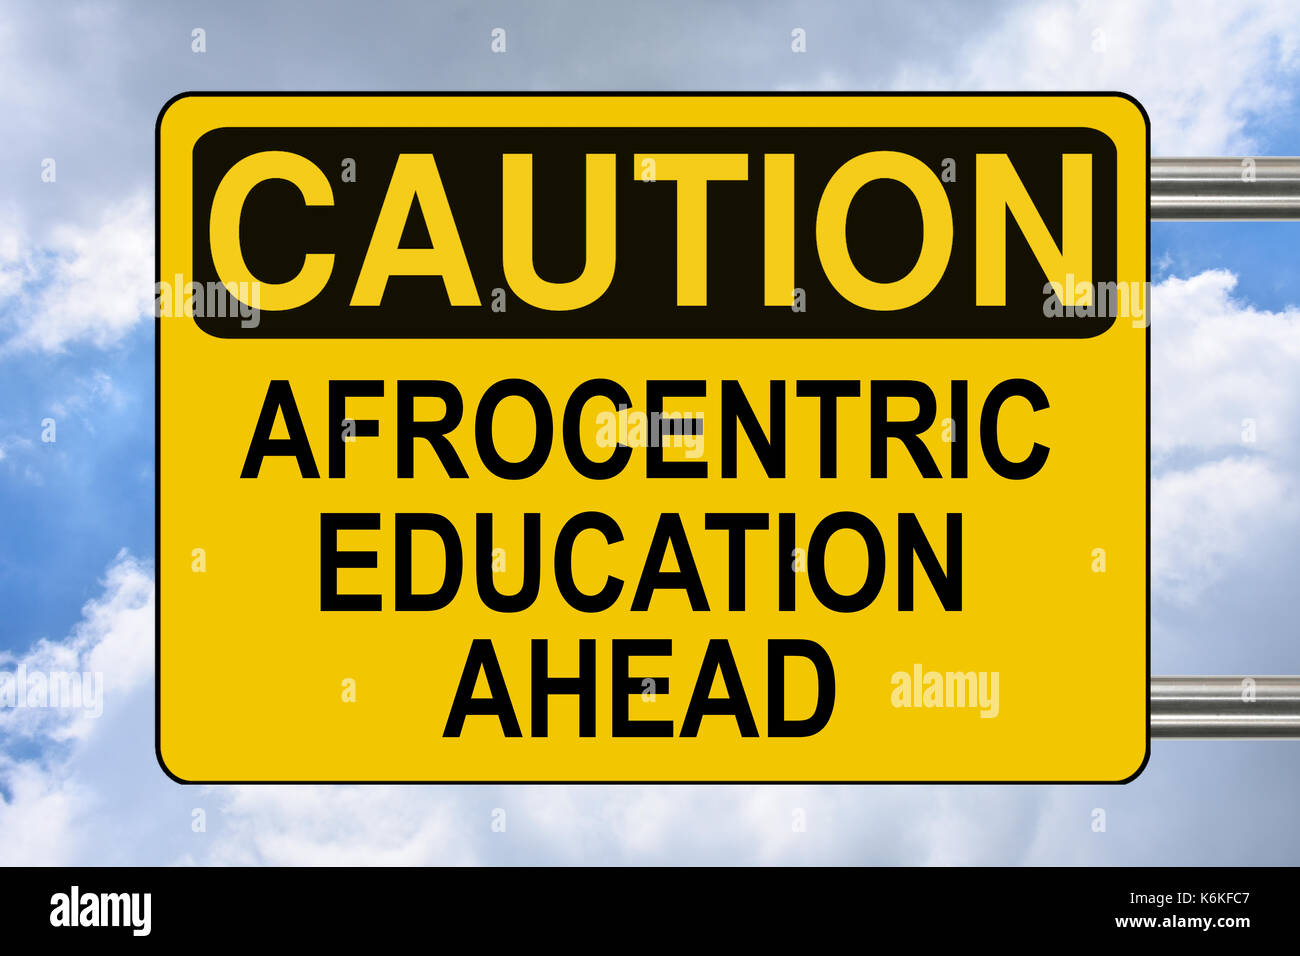 Afrocentric education ahead, educational yellow road sign - Stock Image